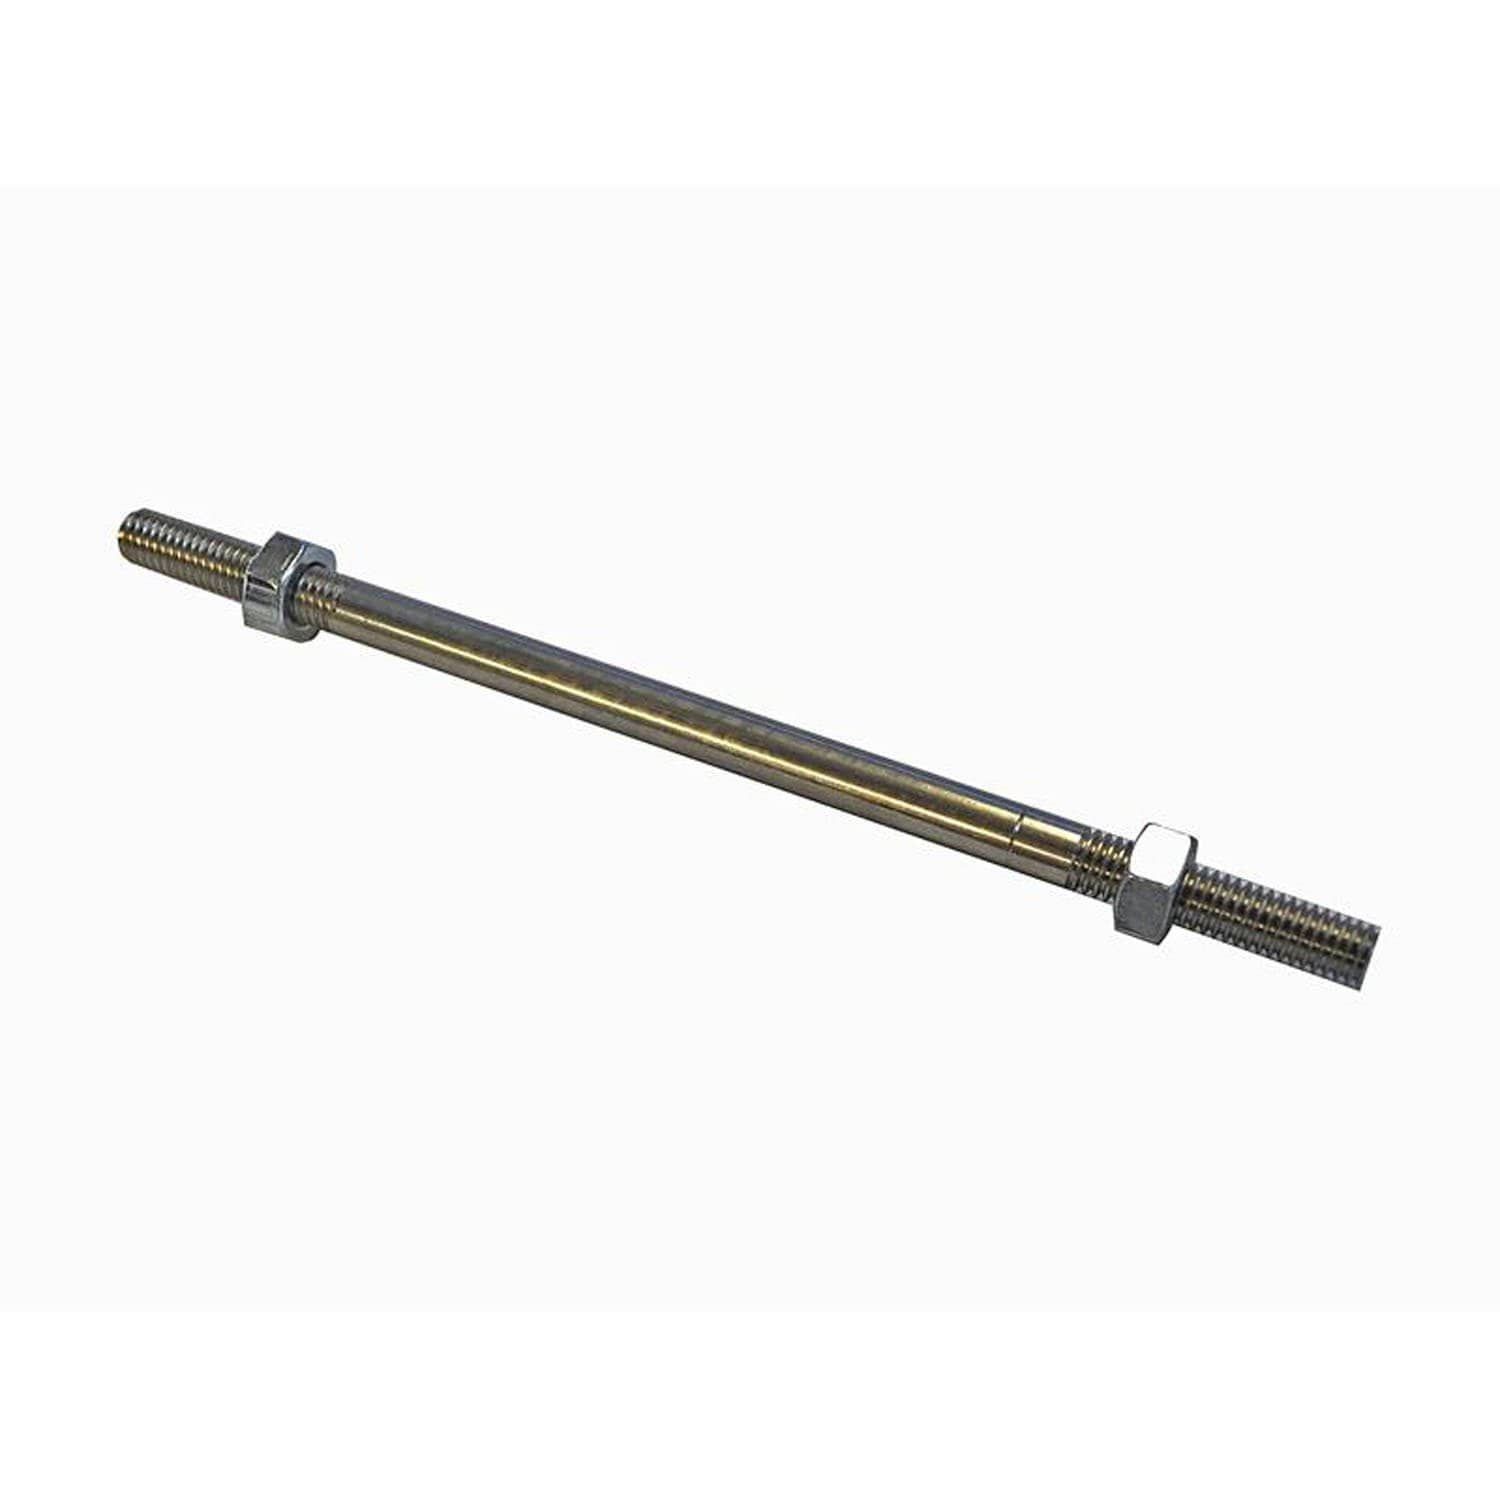 07-0775 Shift Rod 7-3/4 male SS W/Free Flow Nuts - Woodcraft Technologies - Motorcycle Parts